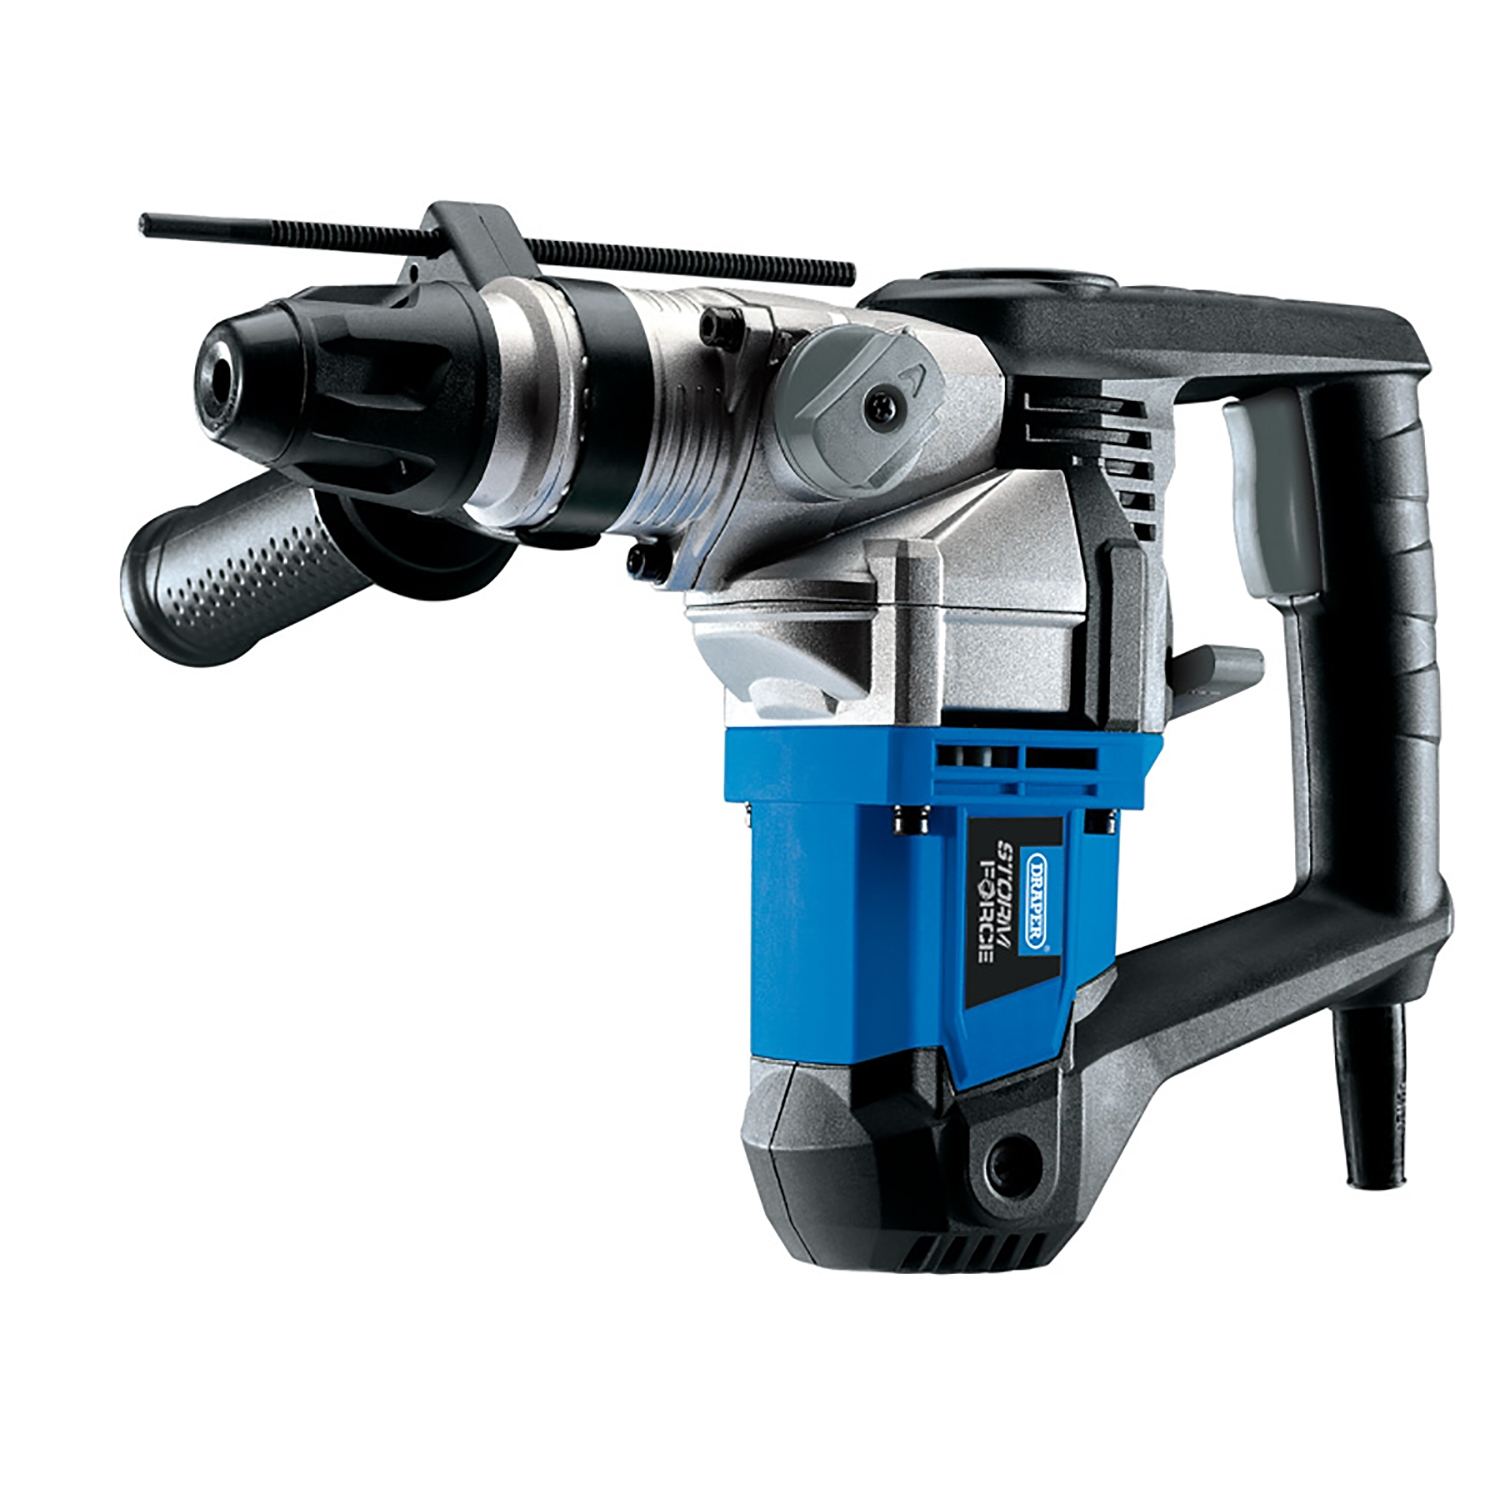 Image of Draper Storm Force SDS+ Rotary Hammer Drill 900w